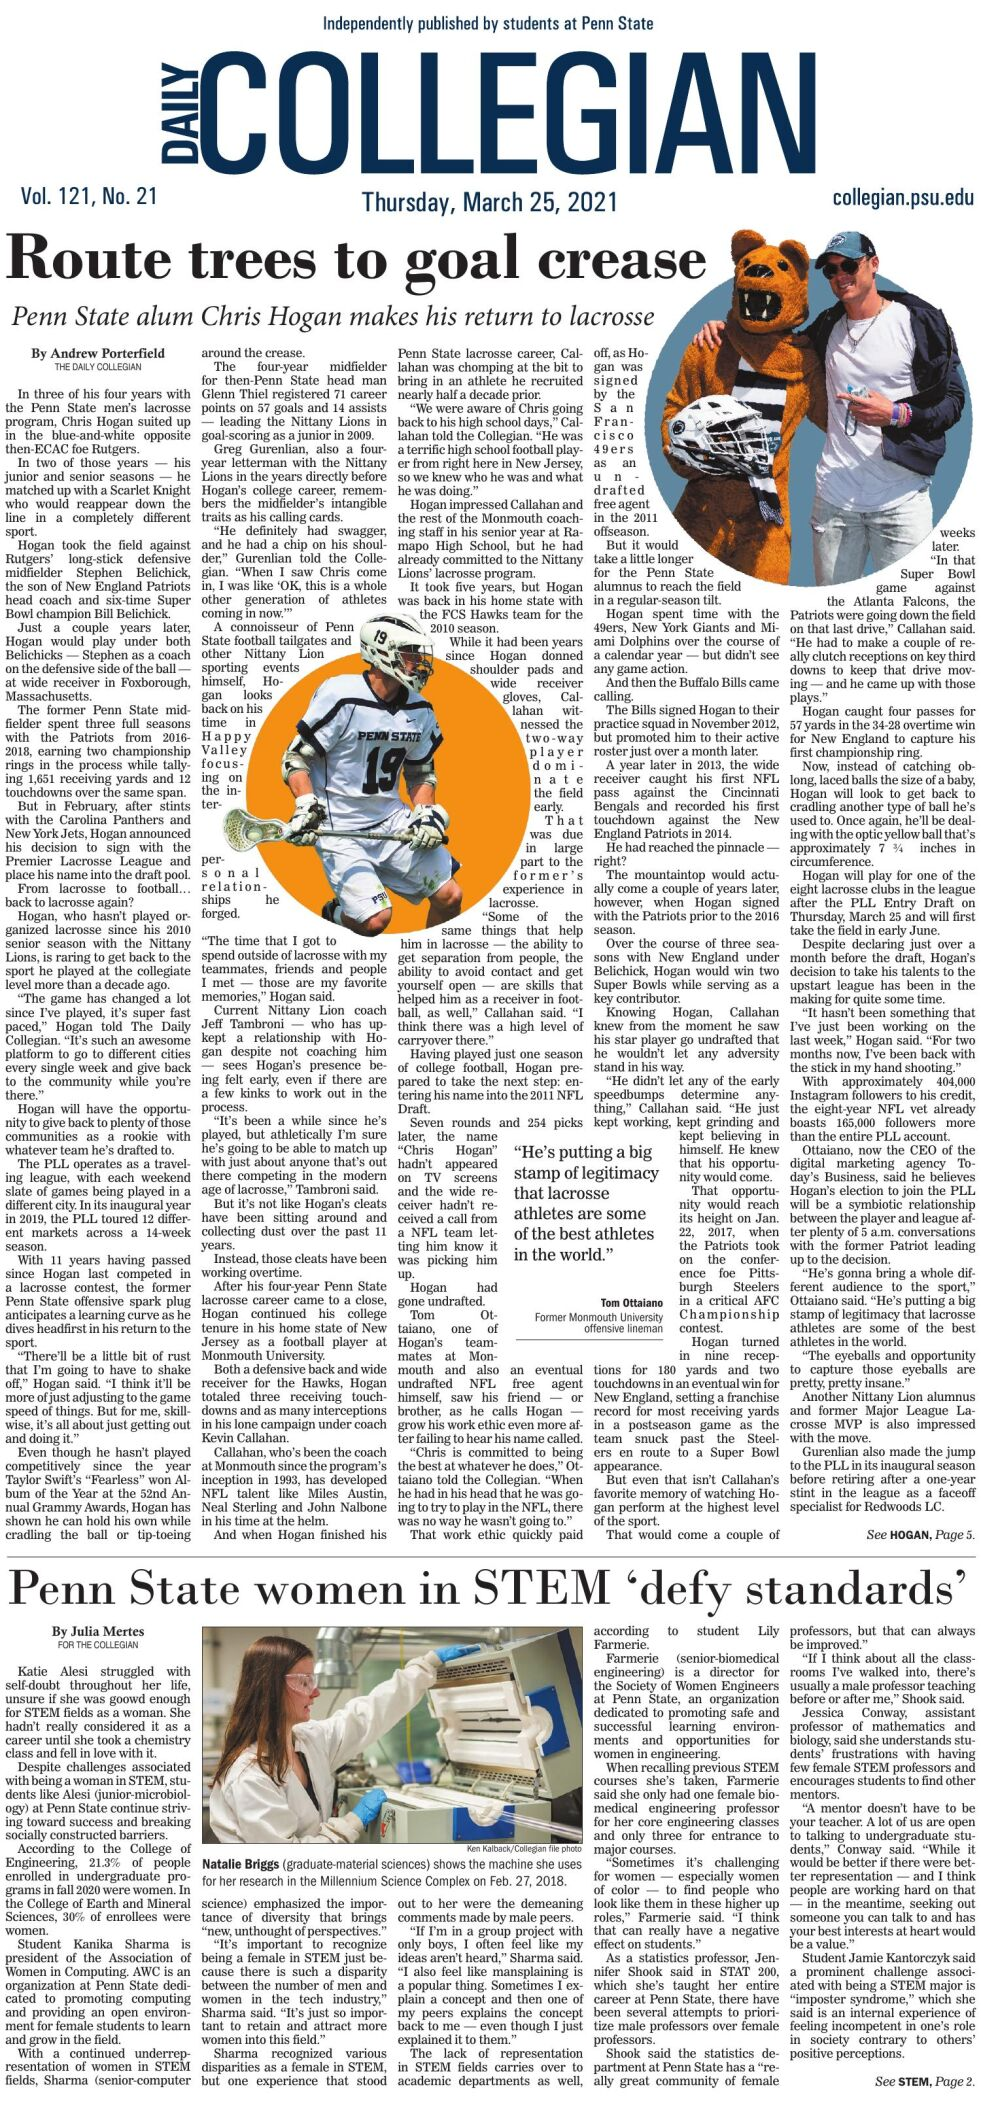 The Daily Collegian for March 25, 2021